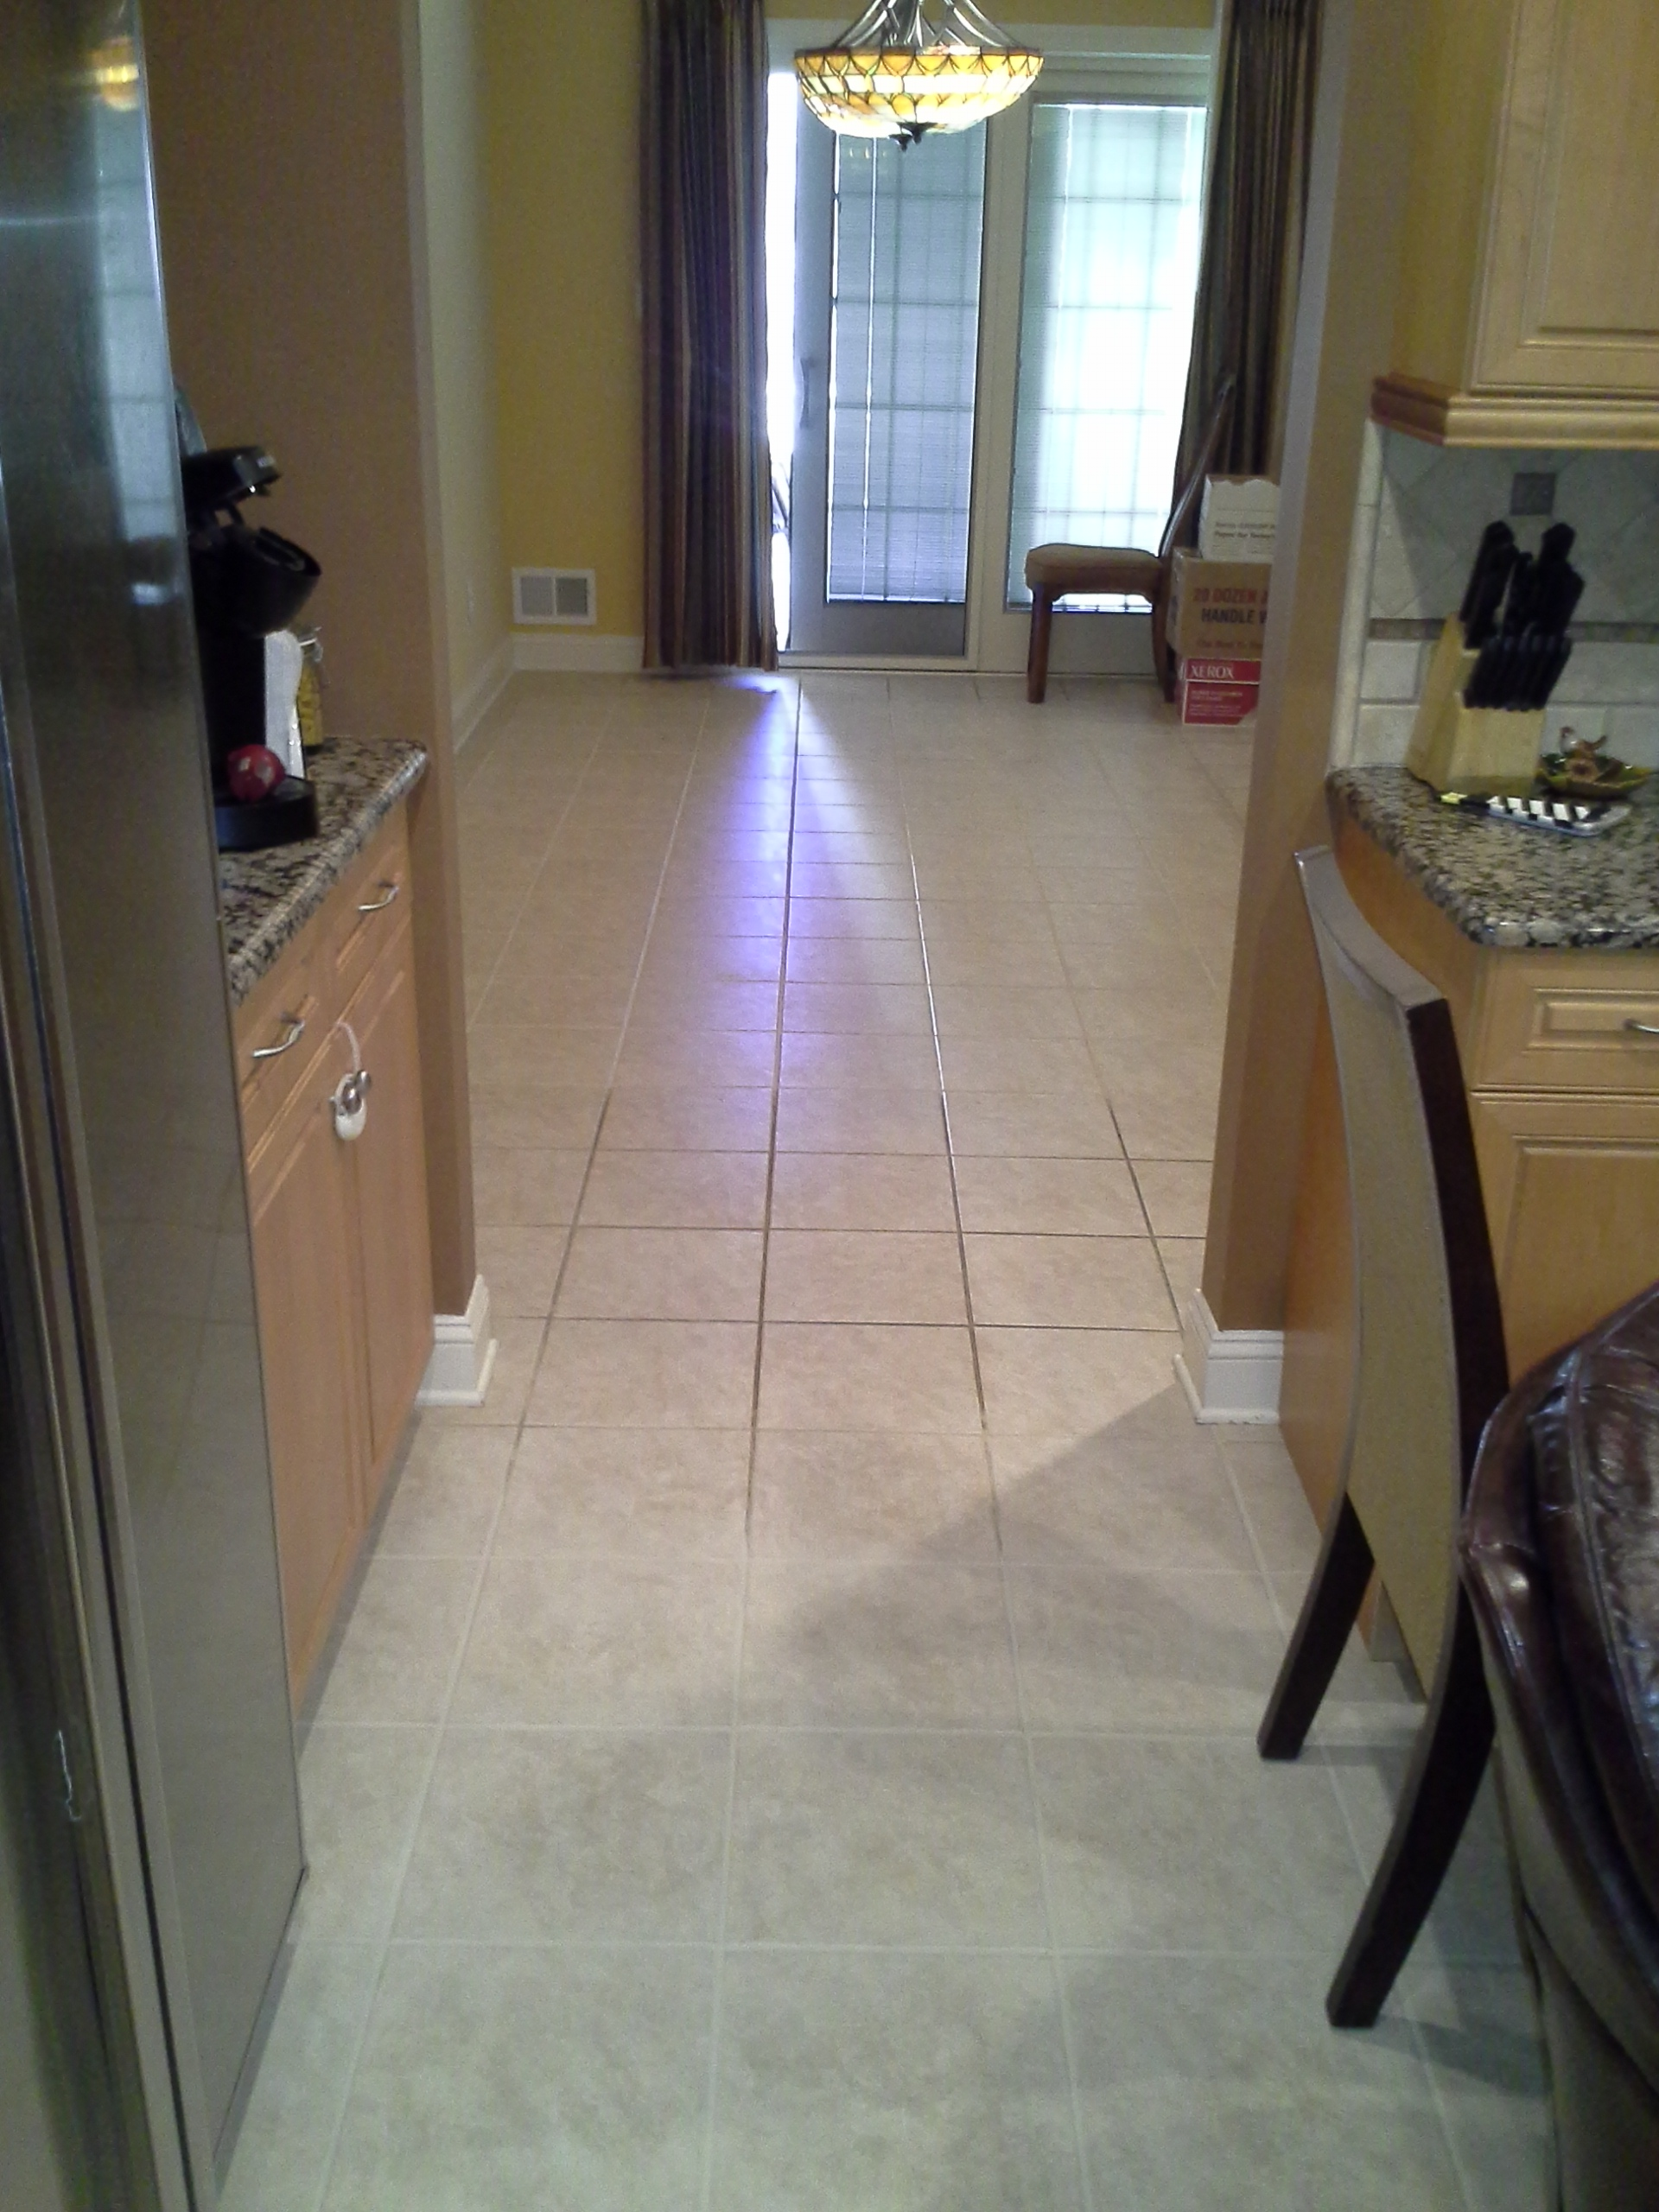 WATERFRONT CONDO IN LONG BRANCH NJ | TILE CLEANING